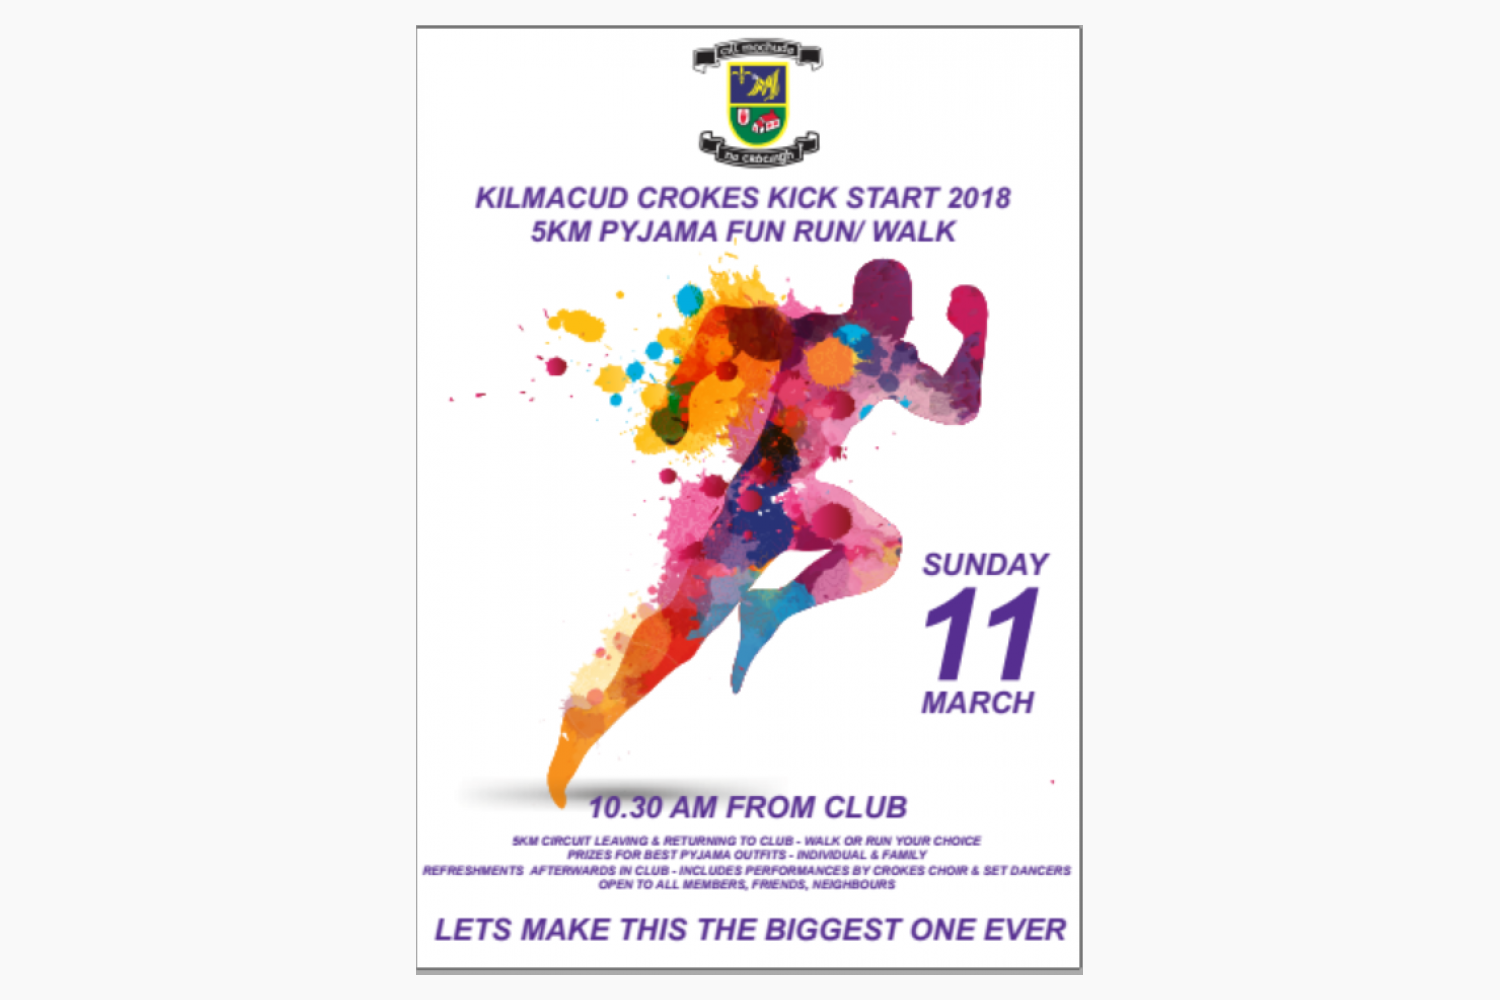 KickStart Crokes End Of program Family/Community 5km Fun Run / Walk Sunday March 11th at 10:30am in Club